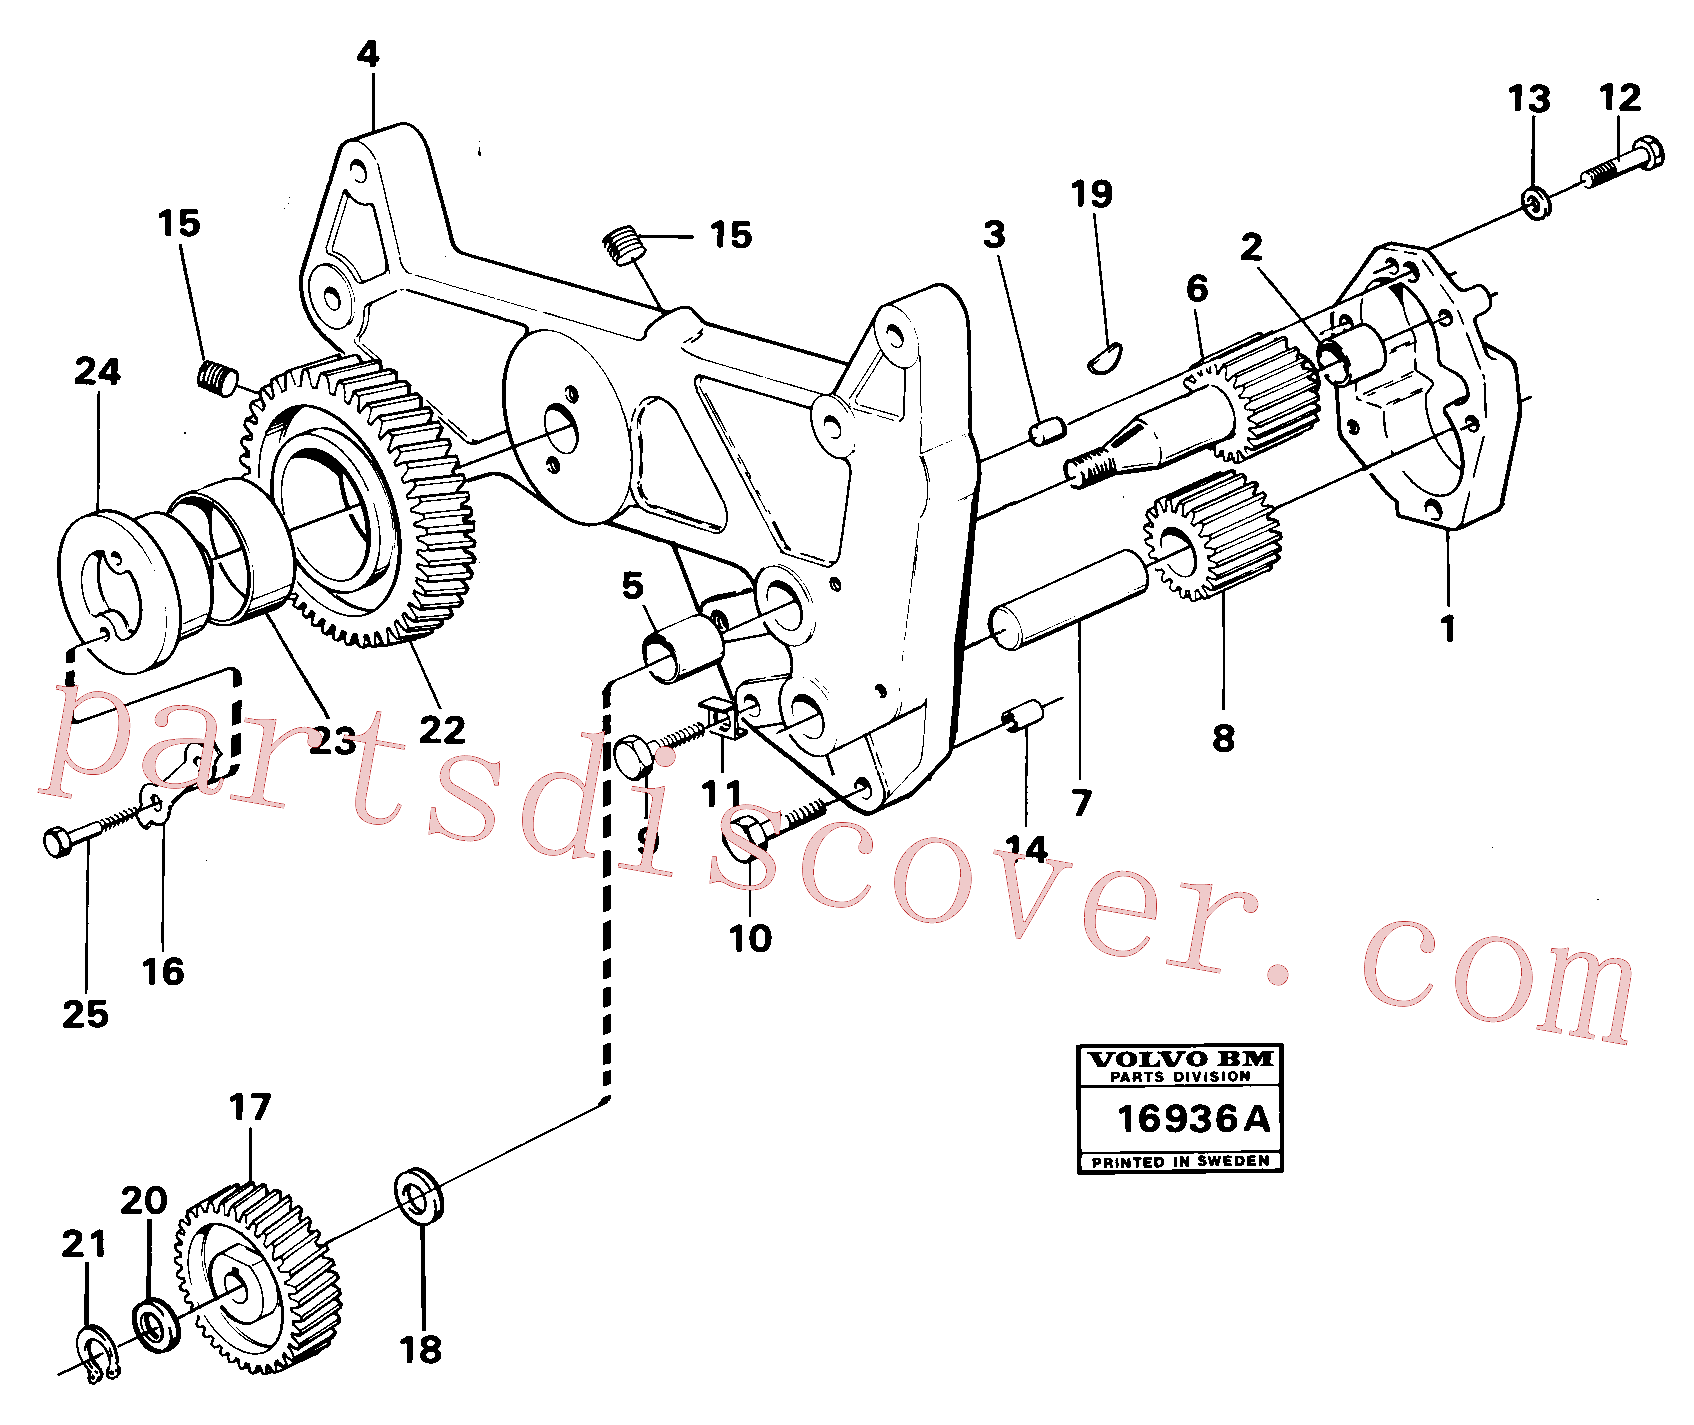 VOE914450 for Volvo Oil pump, Lubricating oil pump mo 53300-(16936A assembly)